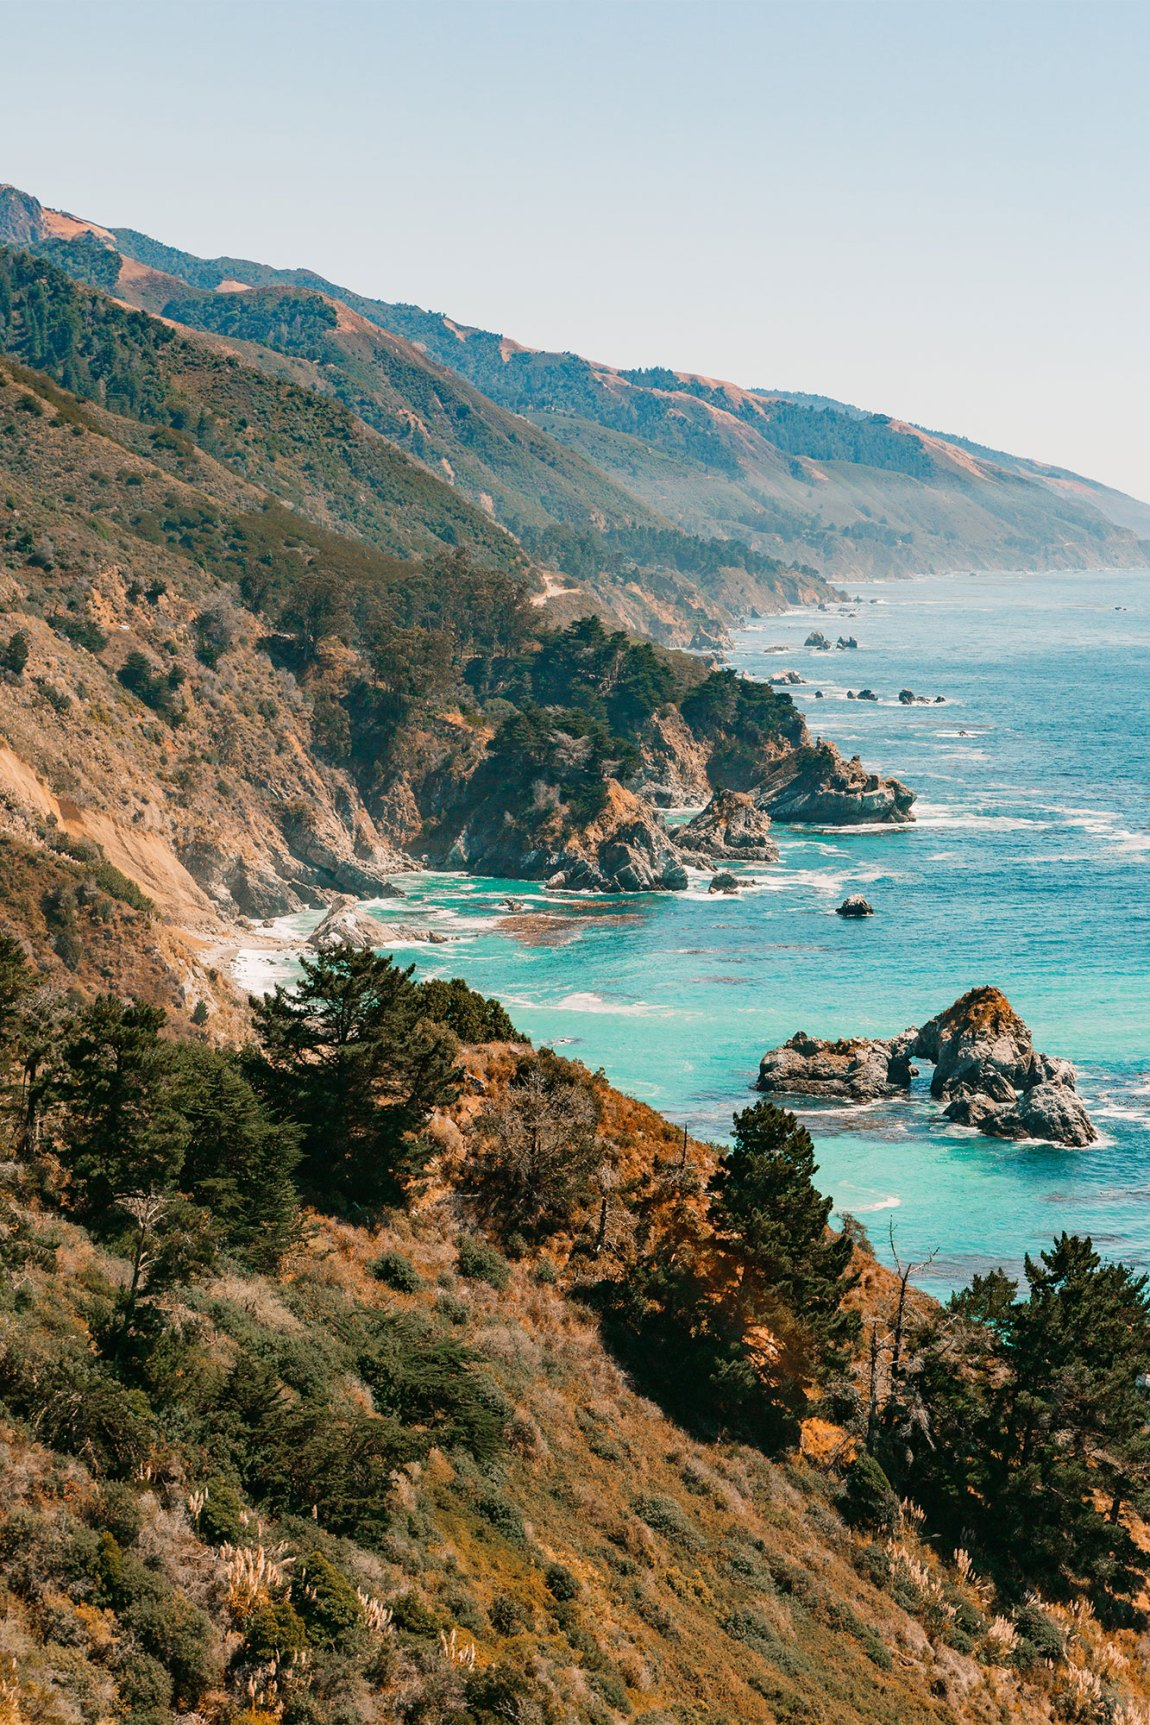 Sparkling turquoise water and ragged coastline of Julia Pfieffer Burns State Park Vista Poiint | as seen on the Local Love and Wanderlust Blog